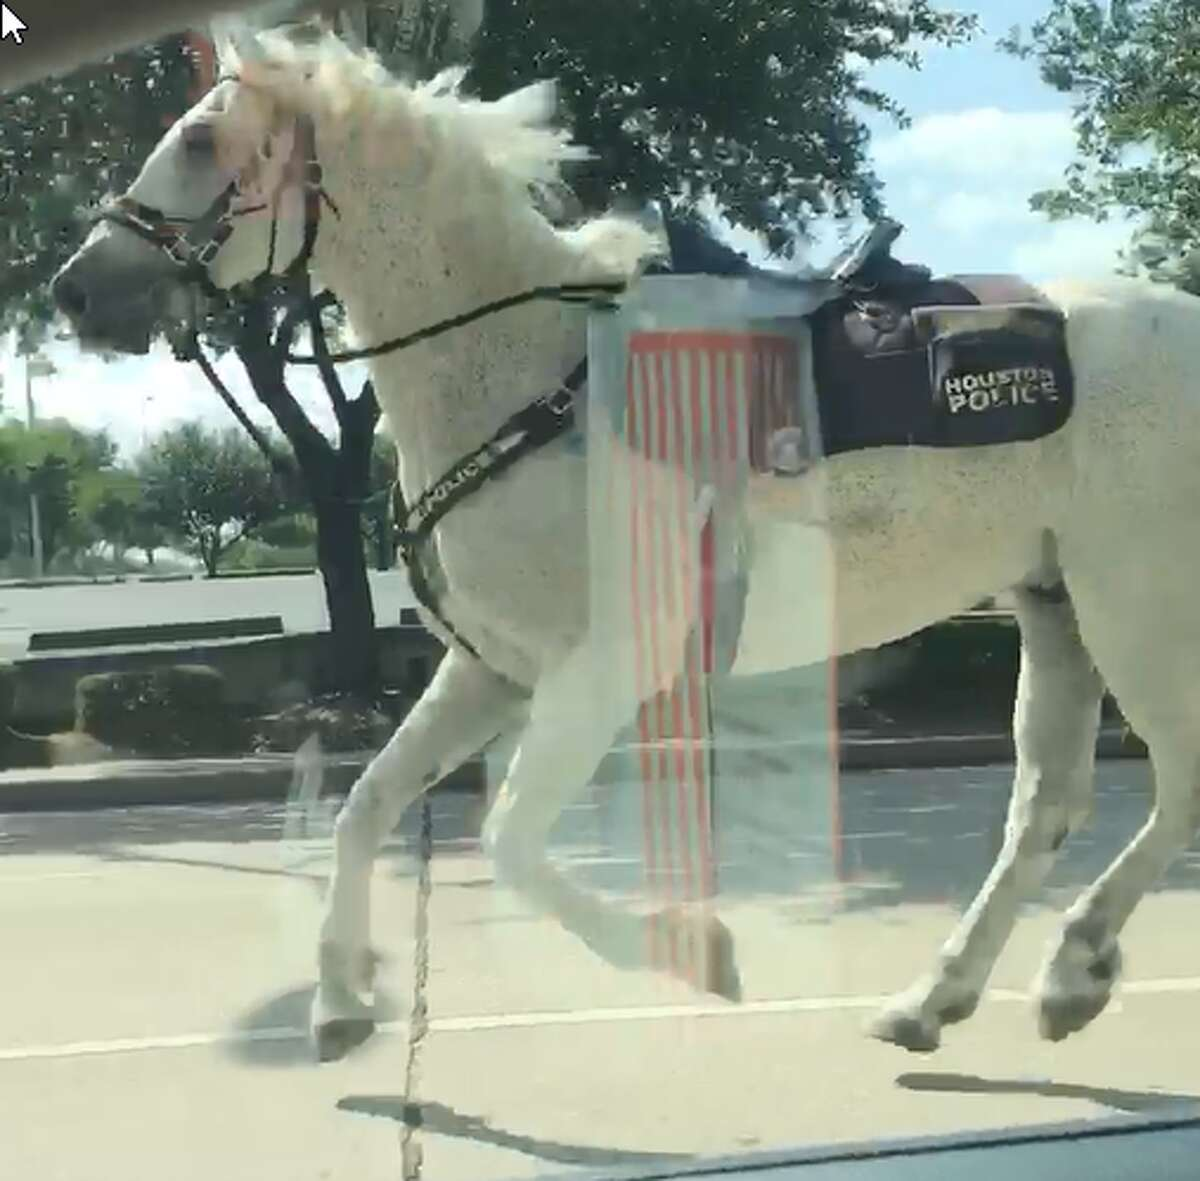 A Houston police horse got away from its handler on Tuesday when a suspected robber spooked the animal.See other funny animal photos from Houston Chronicle archives in the following gallery.